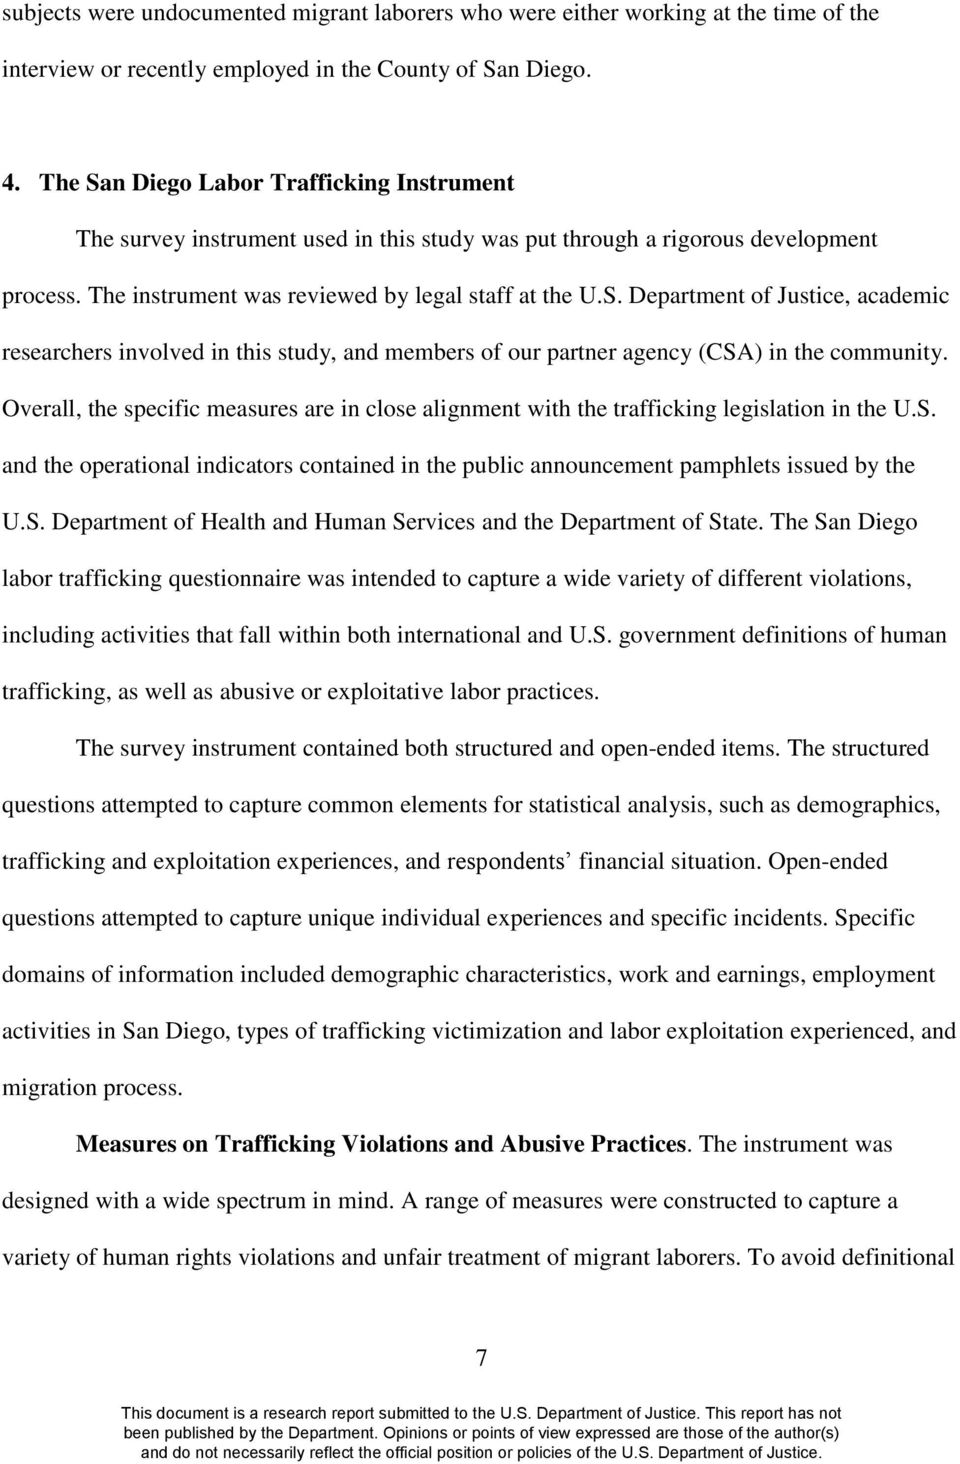 Overall, the specific measures are in close alignment with the trafficking legislation in the U.S. and the operational indicators contained in the public announcement pamphlets issued by the U.S. Department of Health and Human Services and the Department of State.